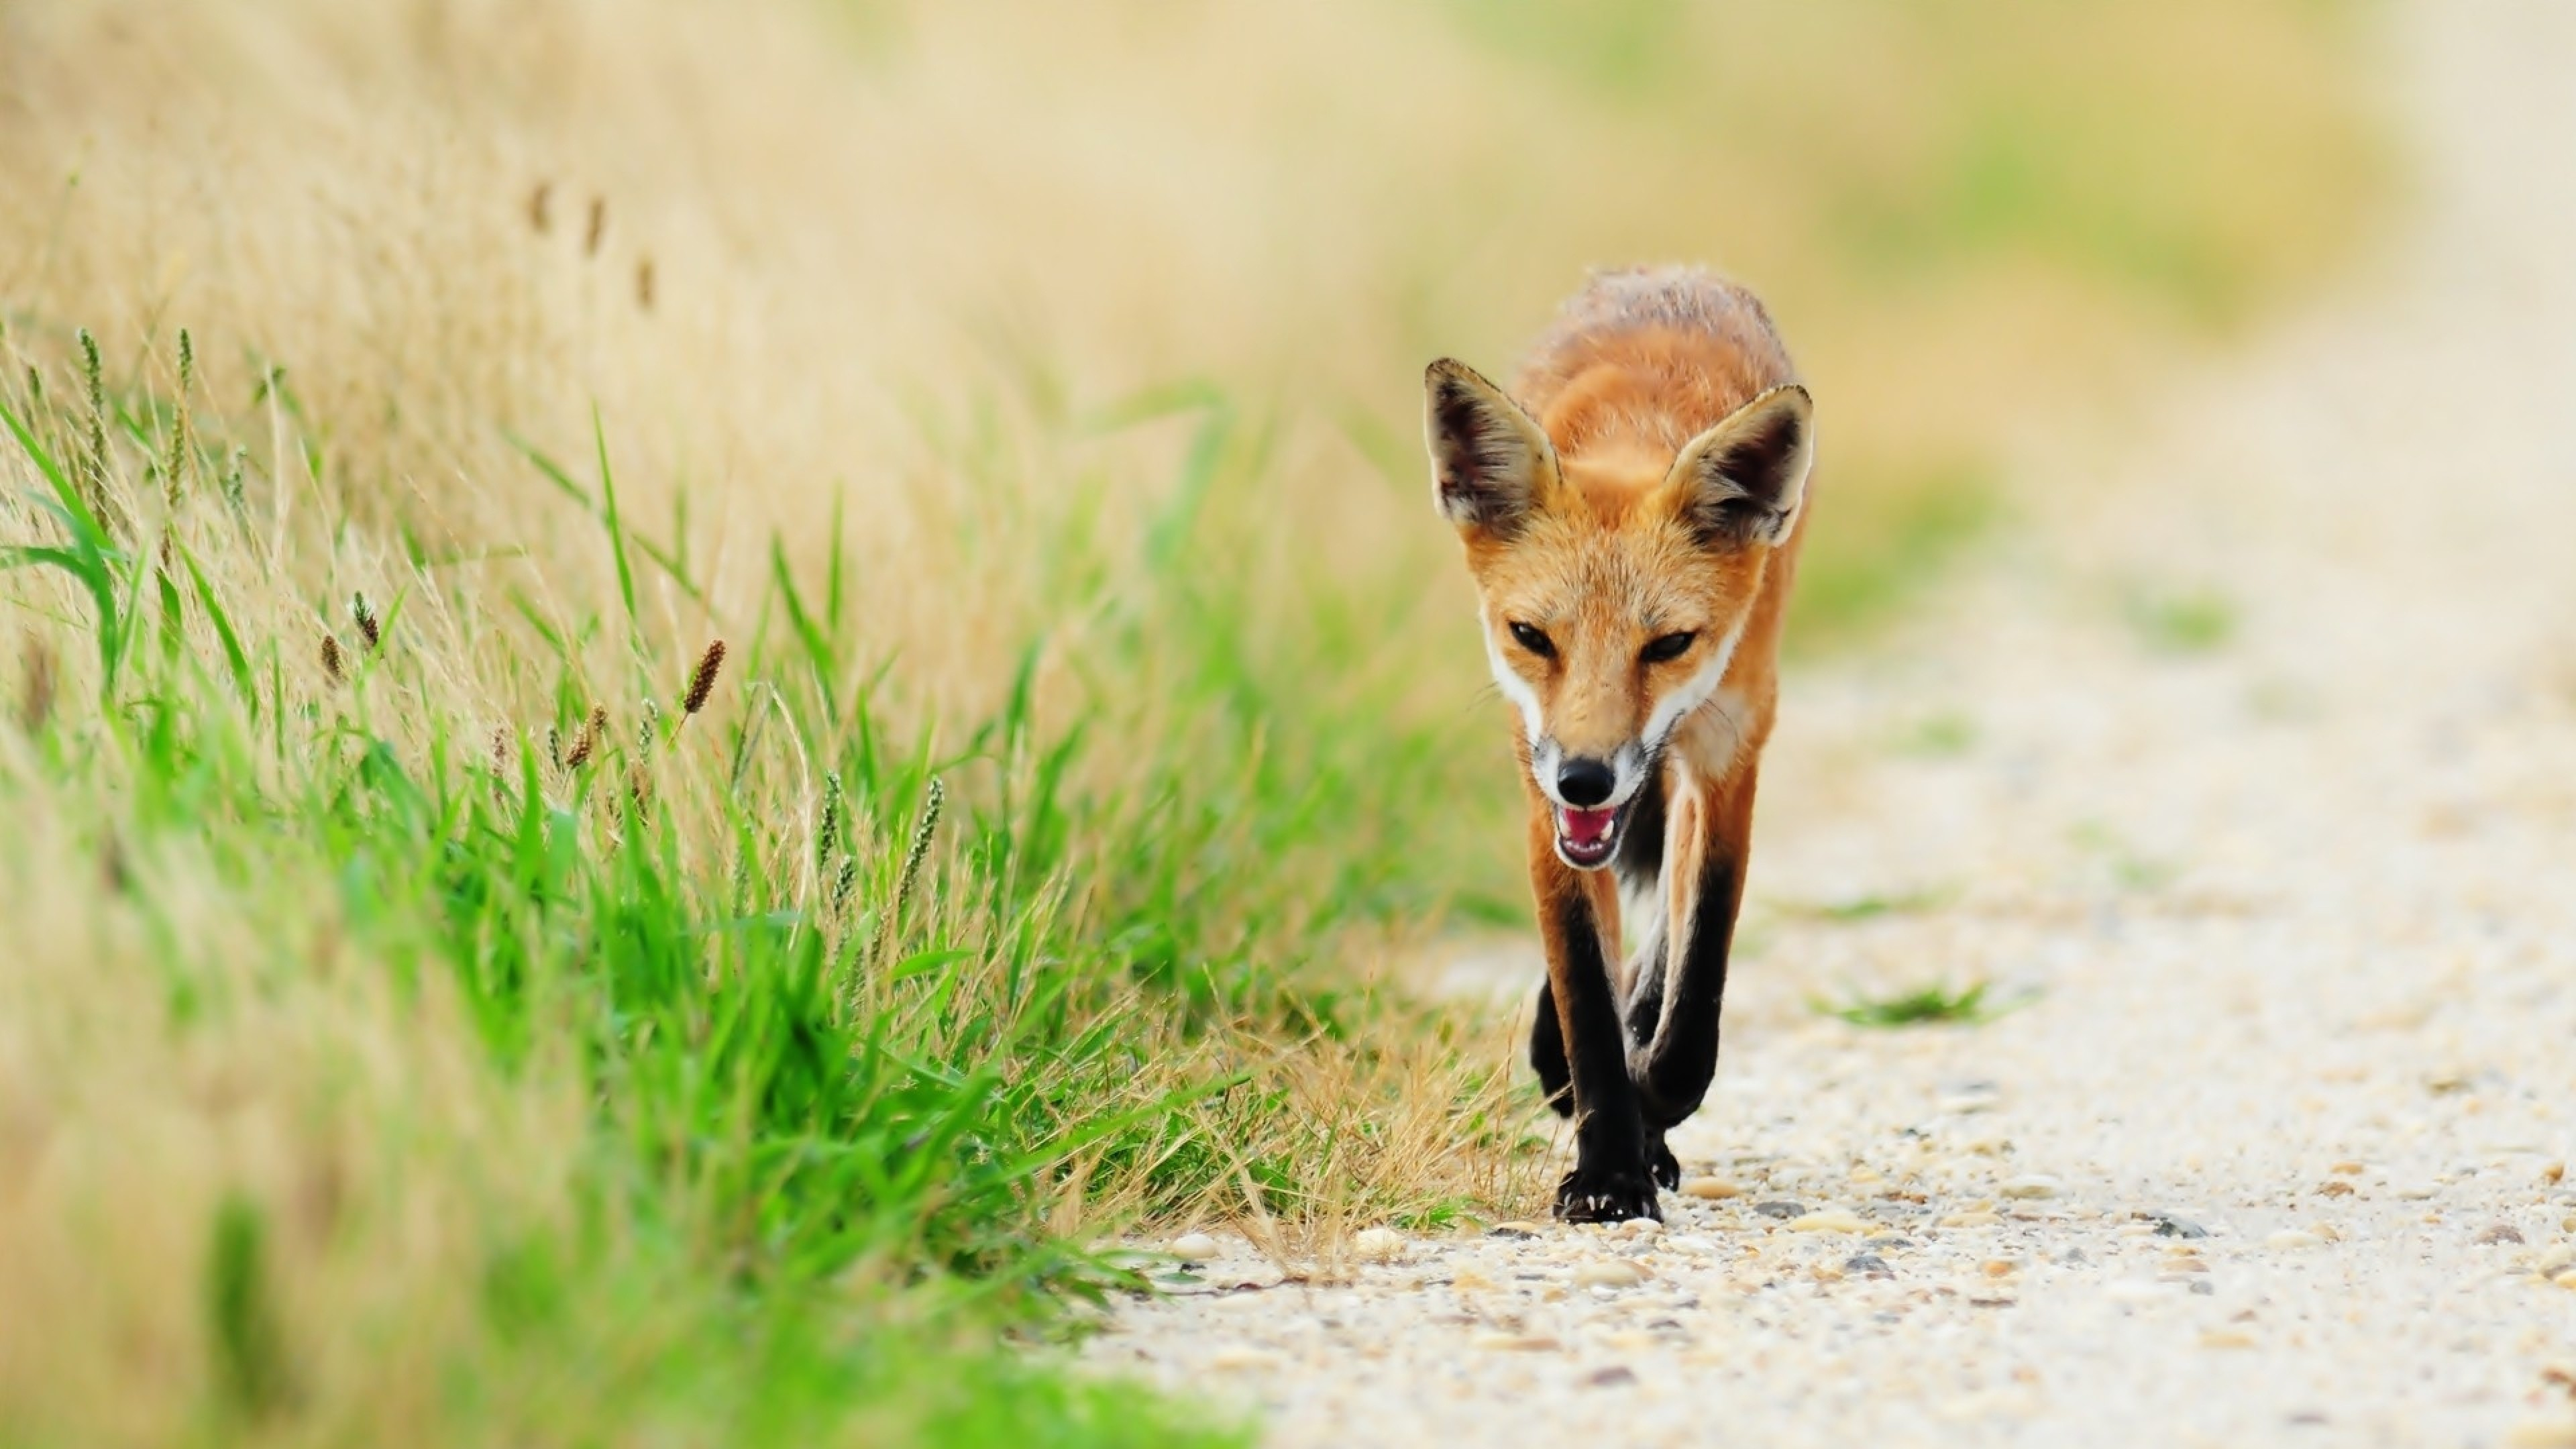 3840x2160 Preview wallpaper fox, thin, grass, sick, unhappy